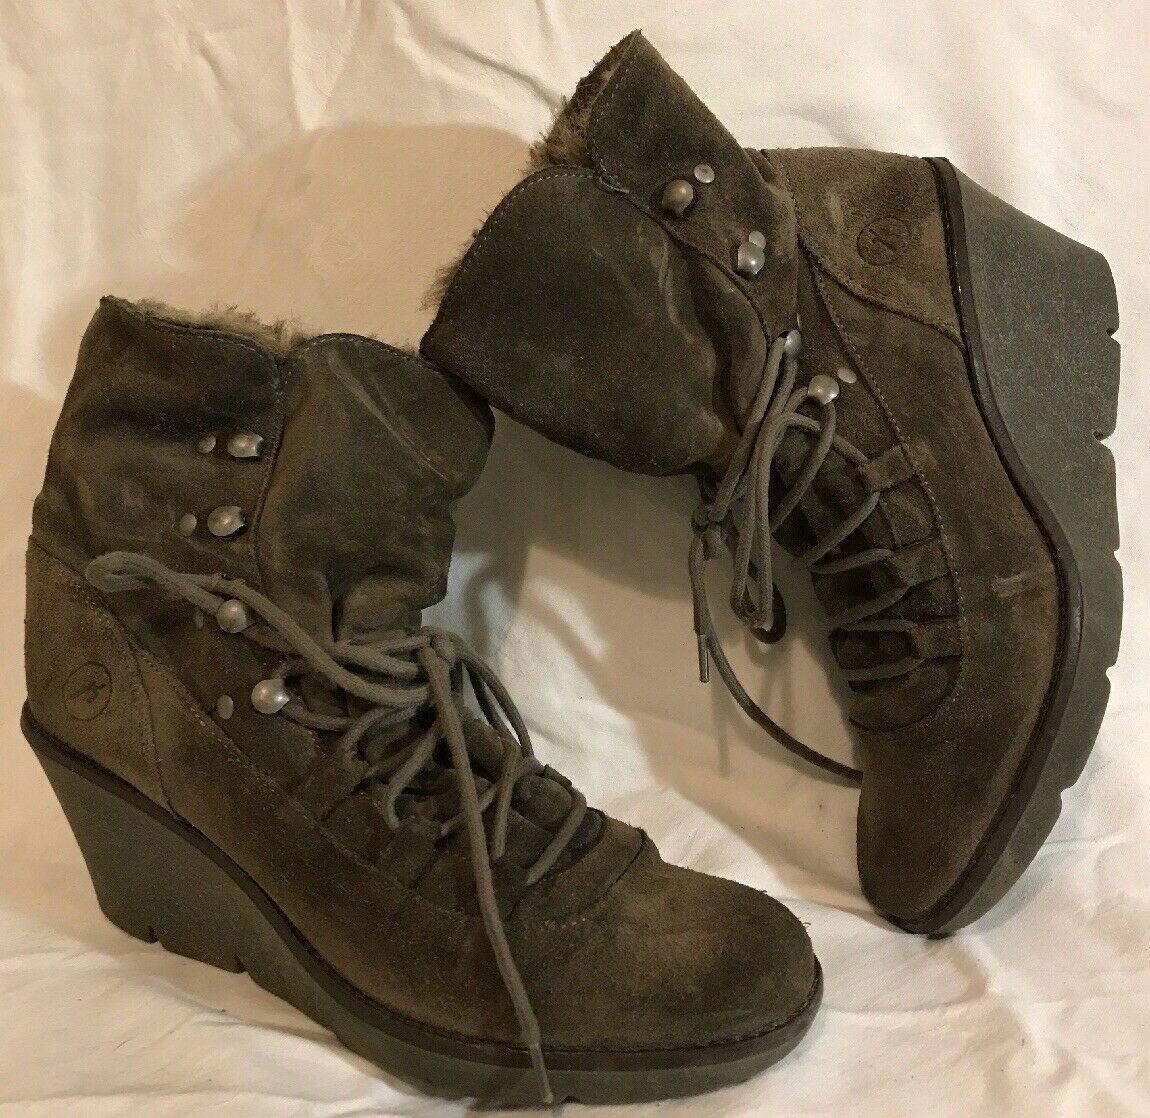 Bronx Brown Ankle Suede Boots Size 39 (858vv)